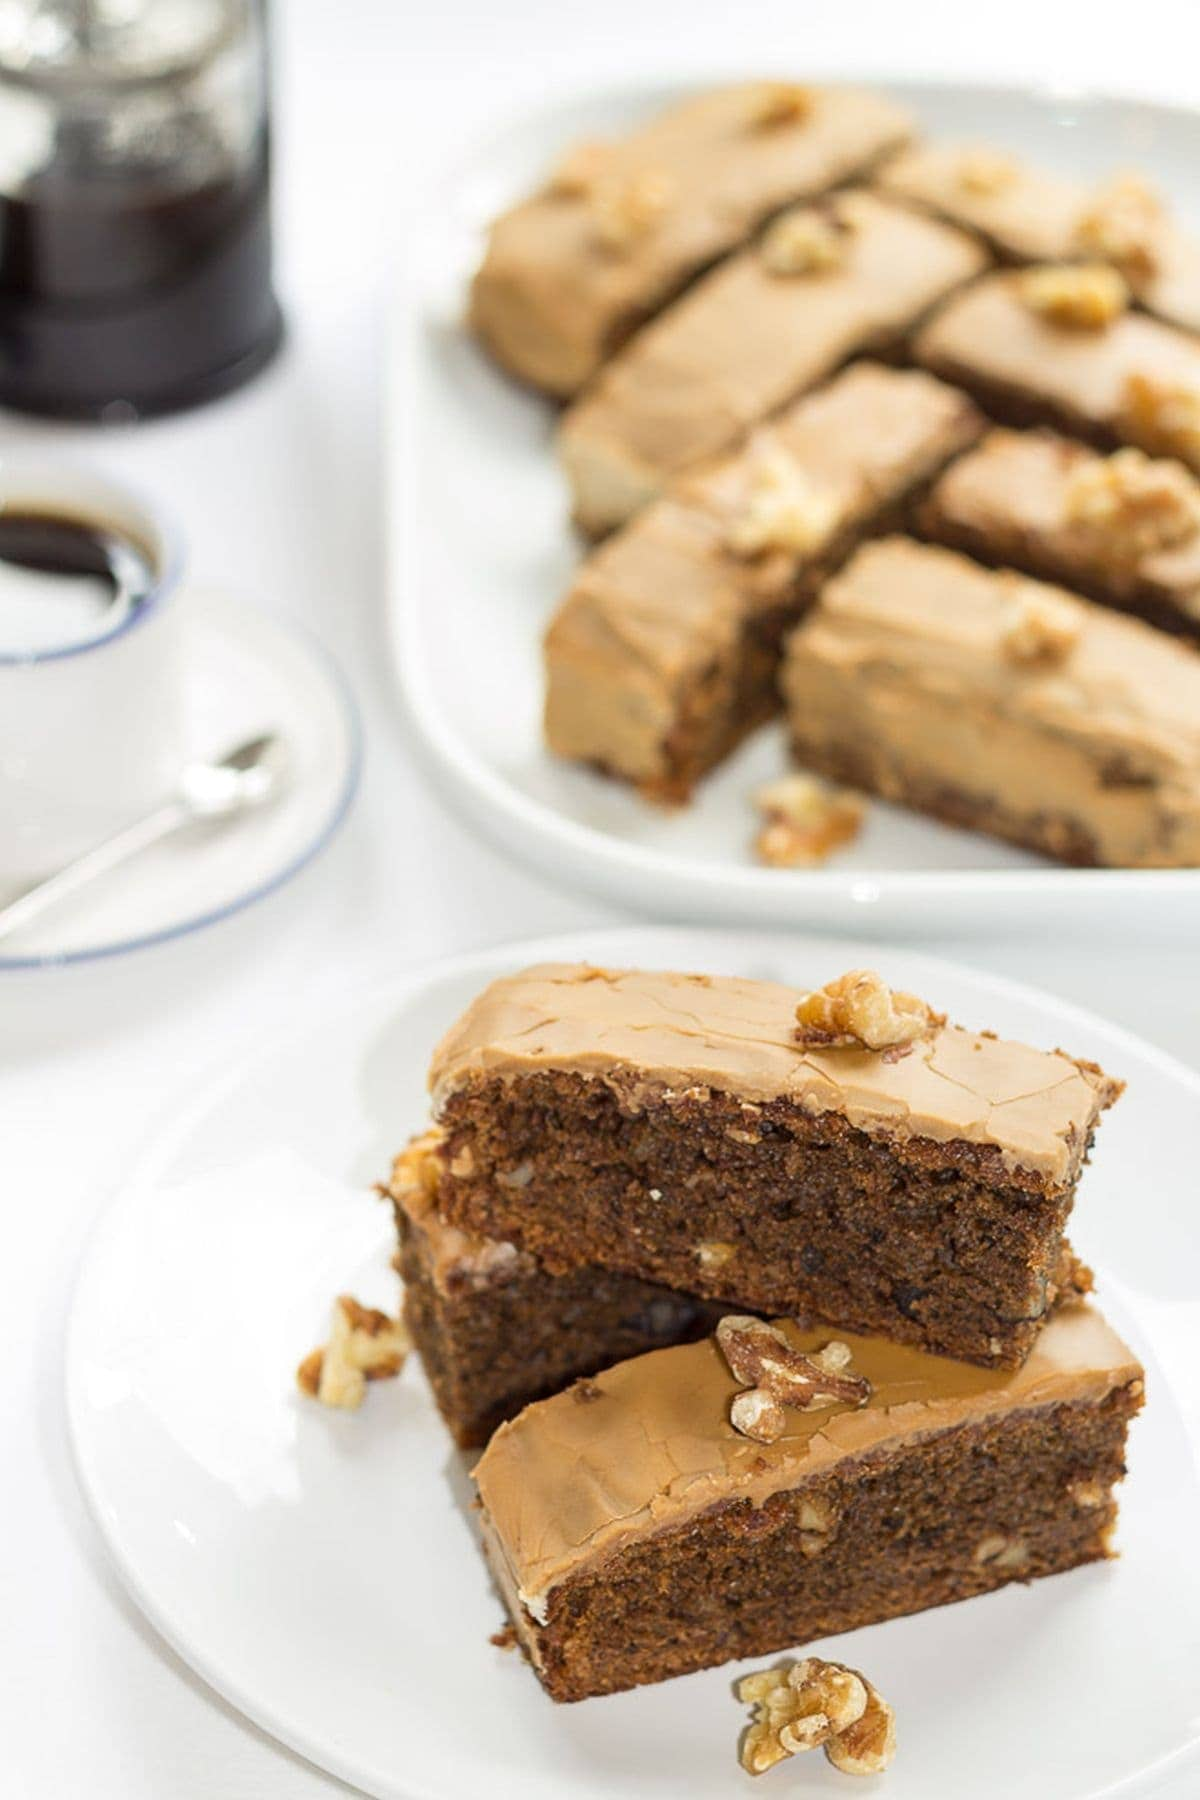 A round plate with slices of coffee walnut cake on at the front. A large serving plate with the remaining slices on in the background. A cup of coffee and cafetiere to the left hand side.